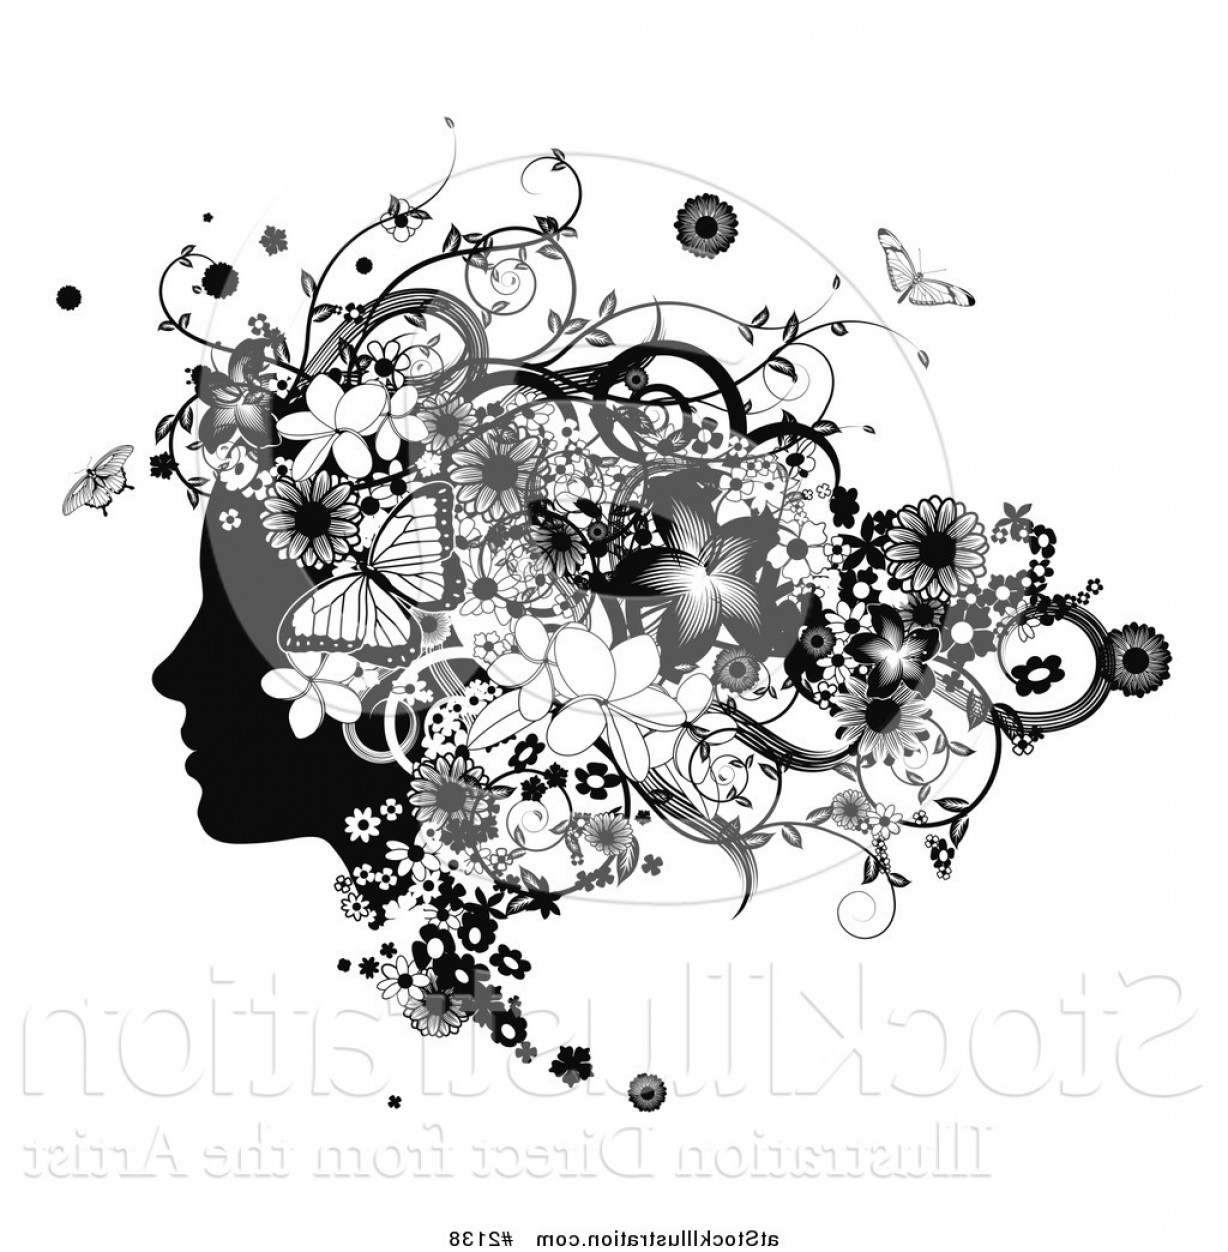 Butter Fly And Flower Vector Black And White: Vector Illustration Of A Black And White Womans Face In Profile With Flowers And Butterflies By Atstockillustration